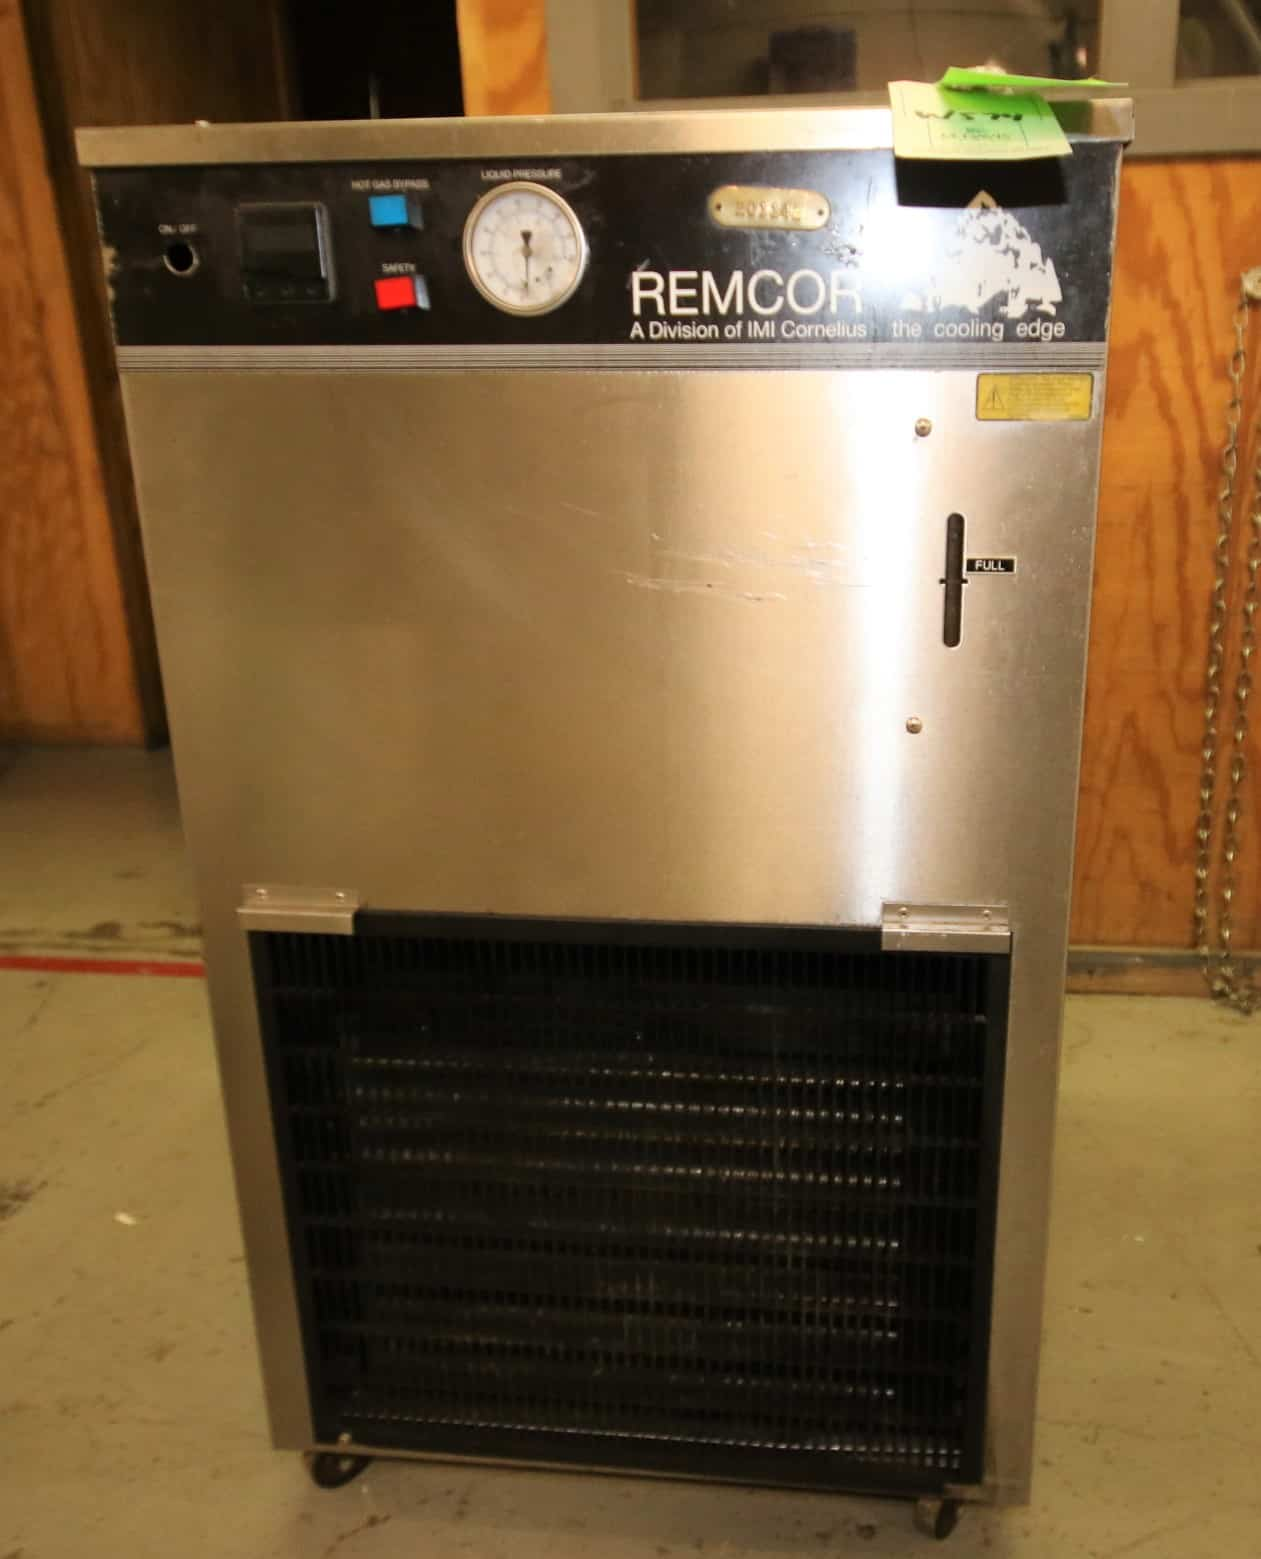 Cornelius / Remcor S/S Portable Recirculating Liquid Chillers, Model CH1001A DX, 230V Single Phase